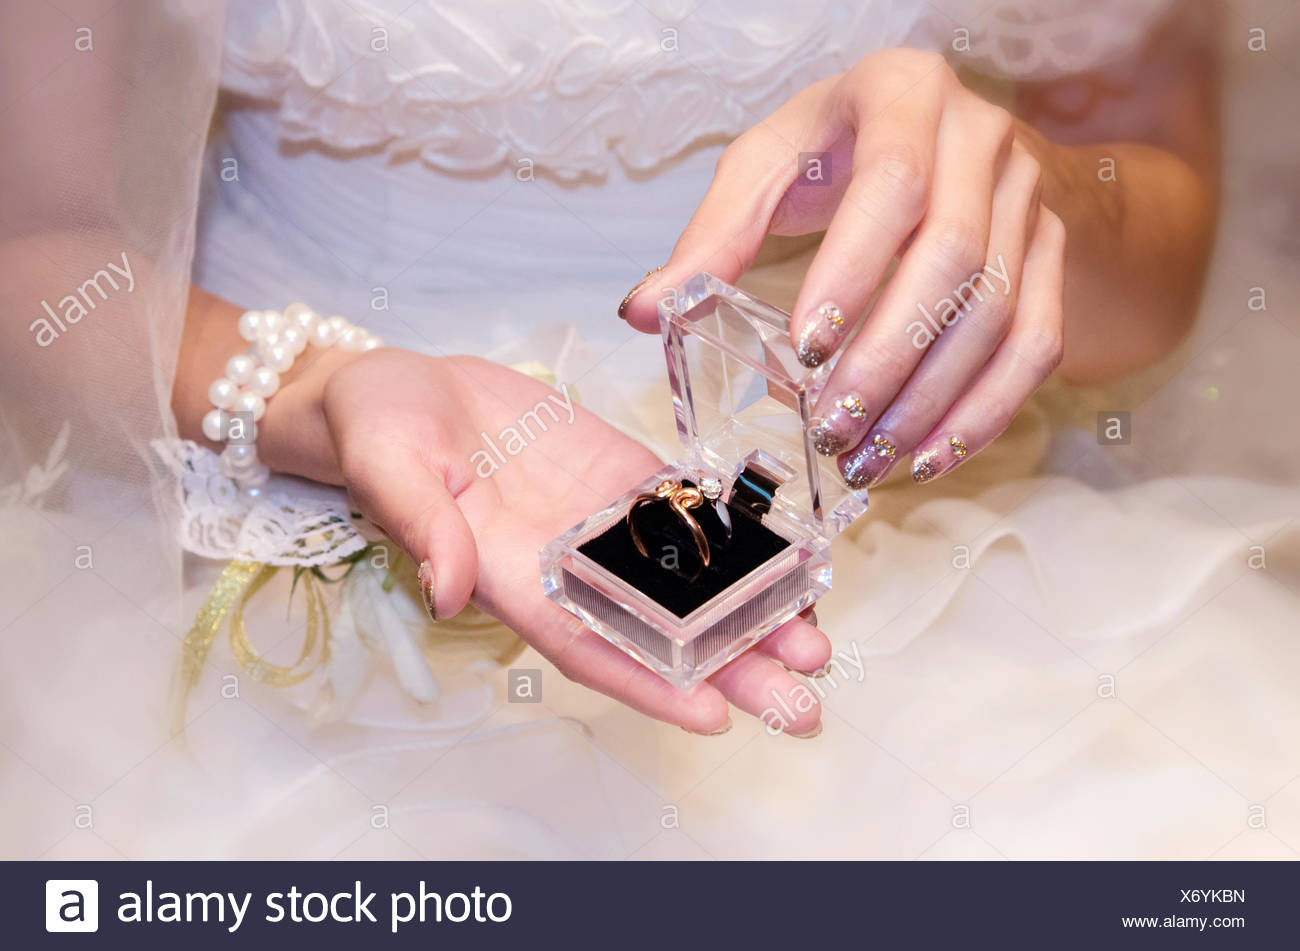 Engagement Gifts Stock Photos & Engagement Gifts Stock Images - Alamy